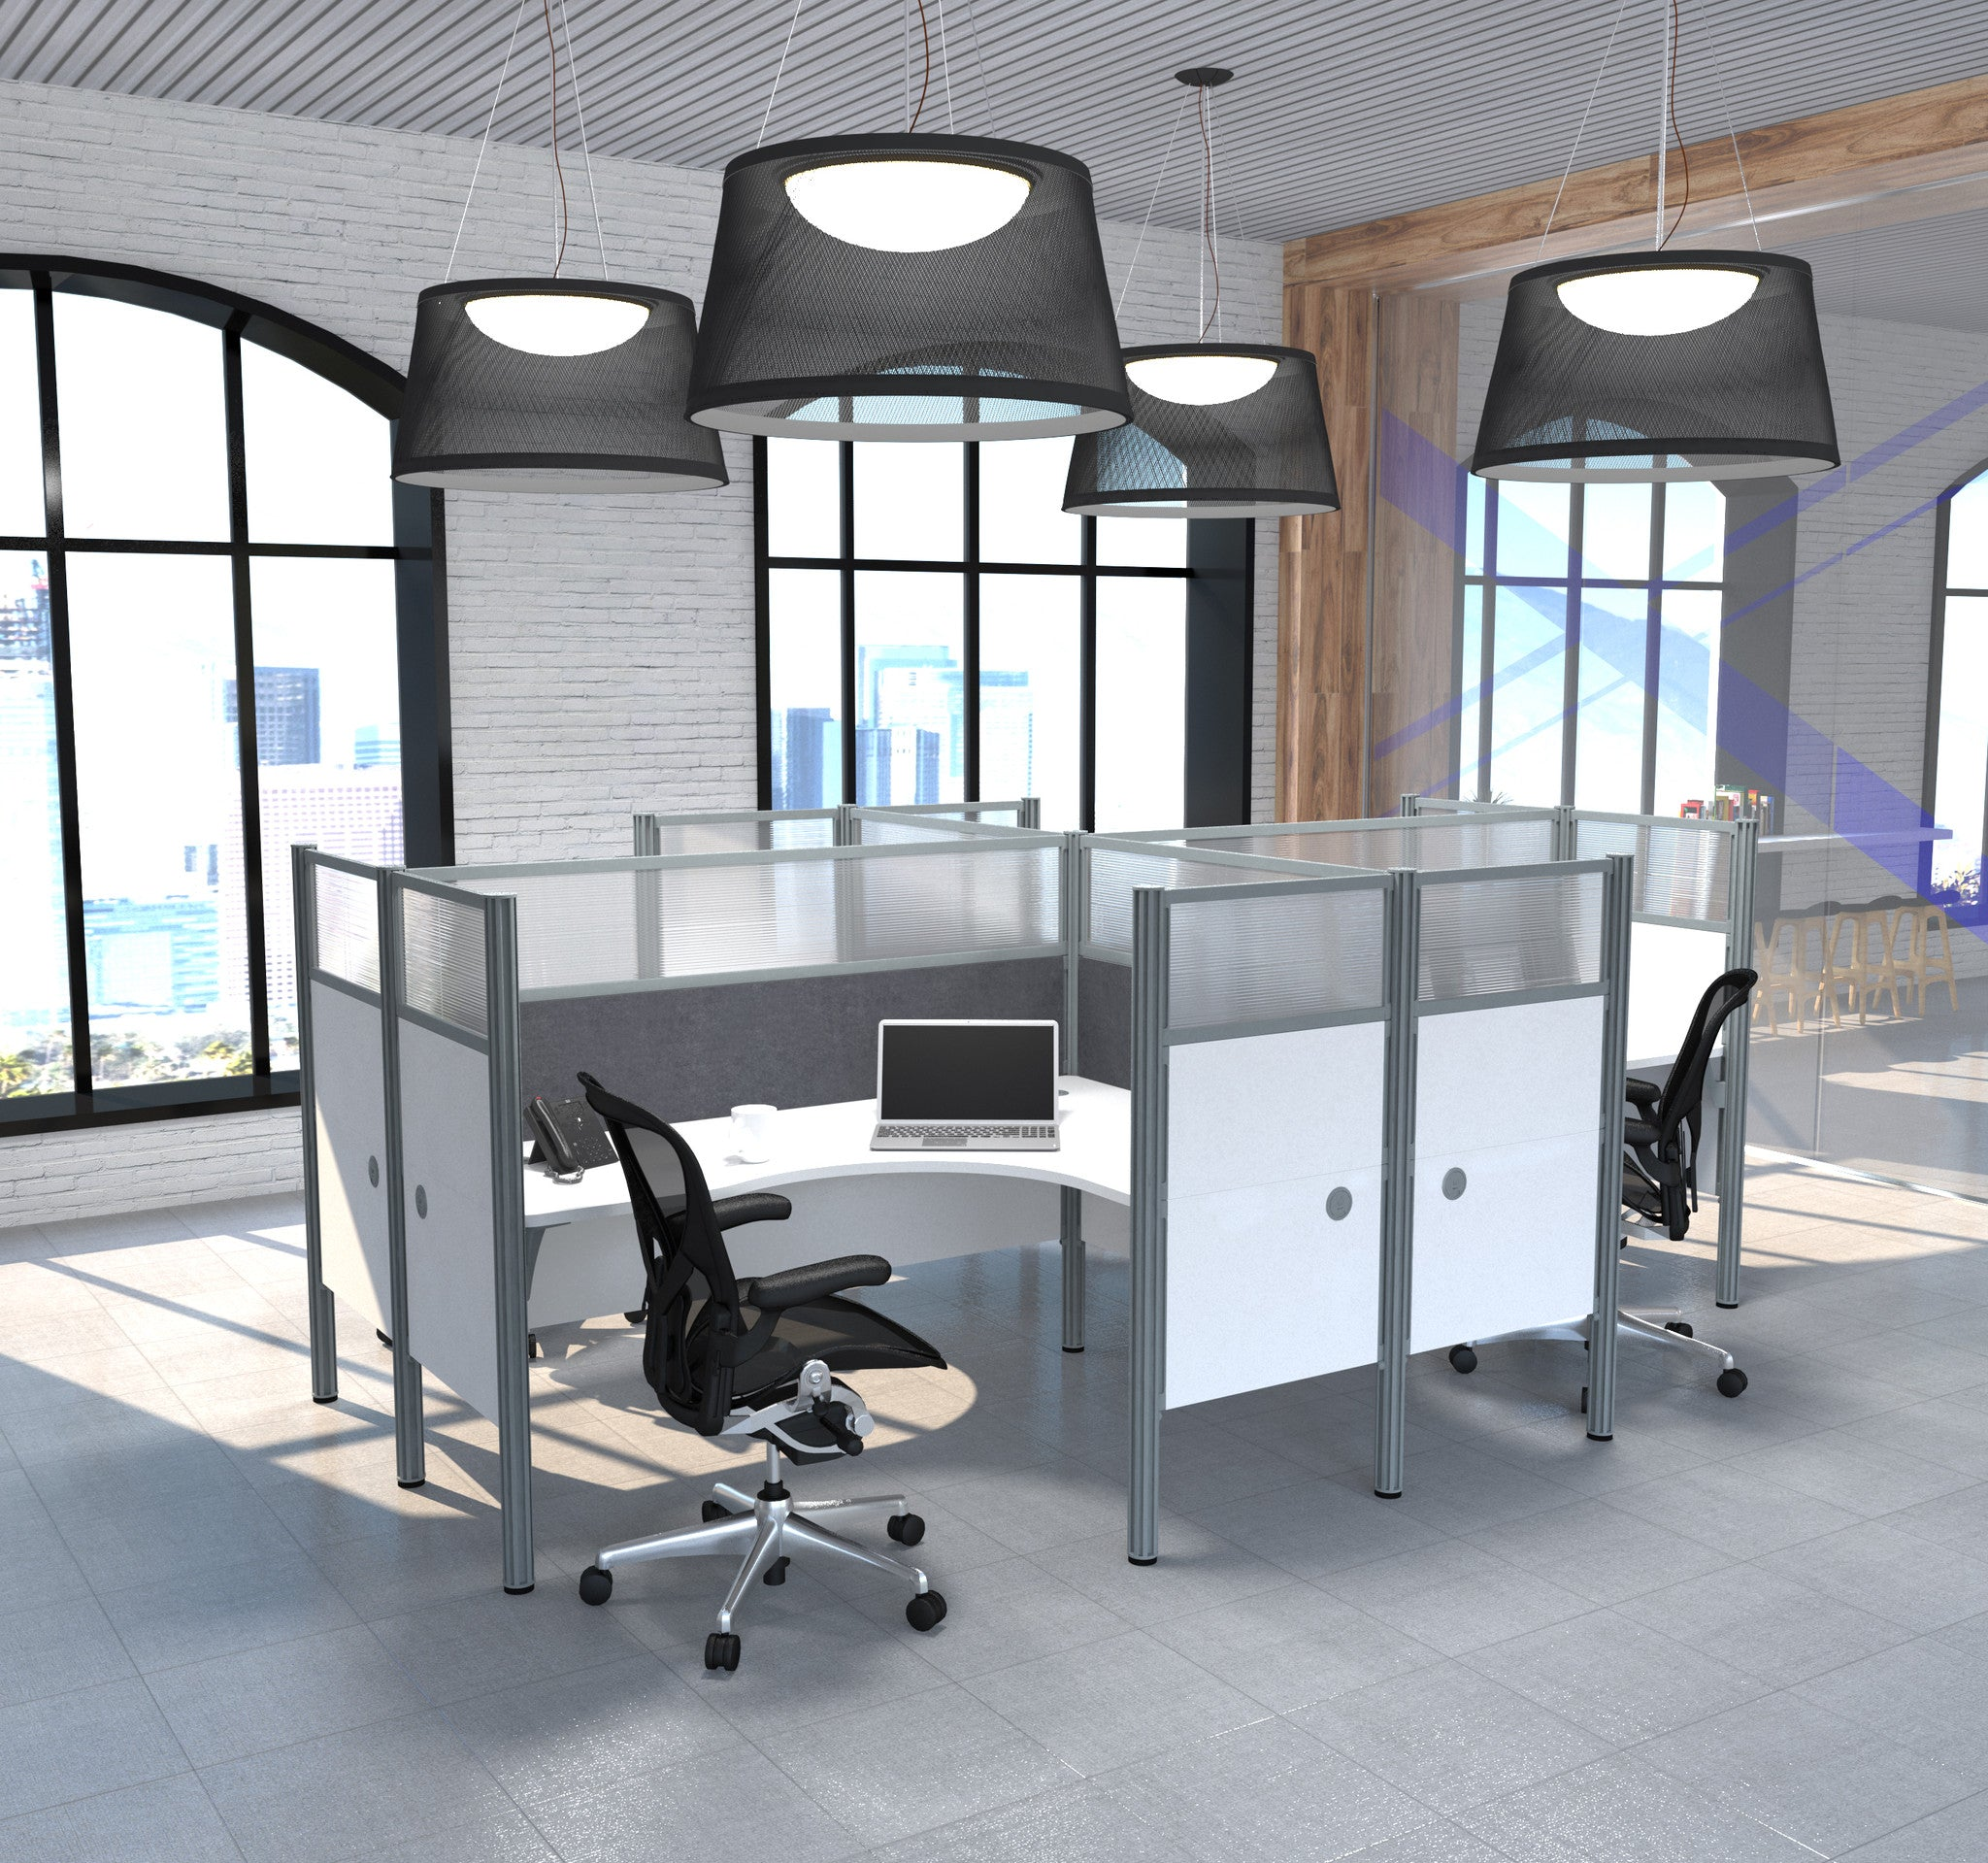 Pro-Biz White 4-Way Workstation with Ultimate Privacy & Gray Tack Boards